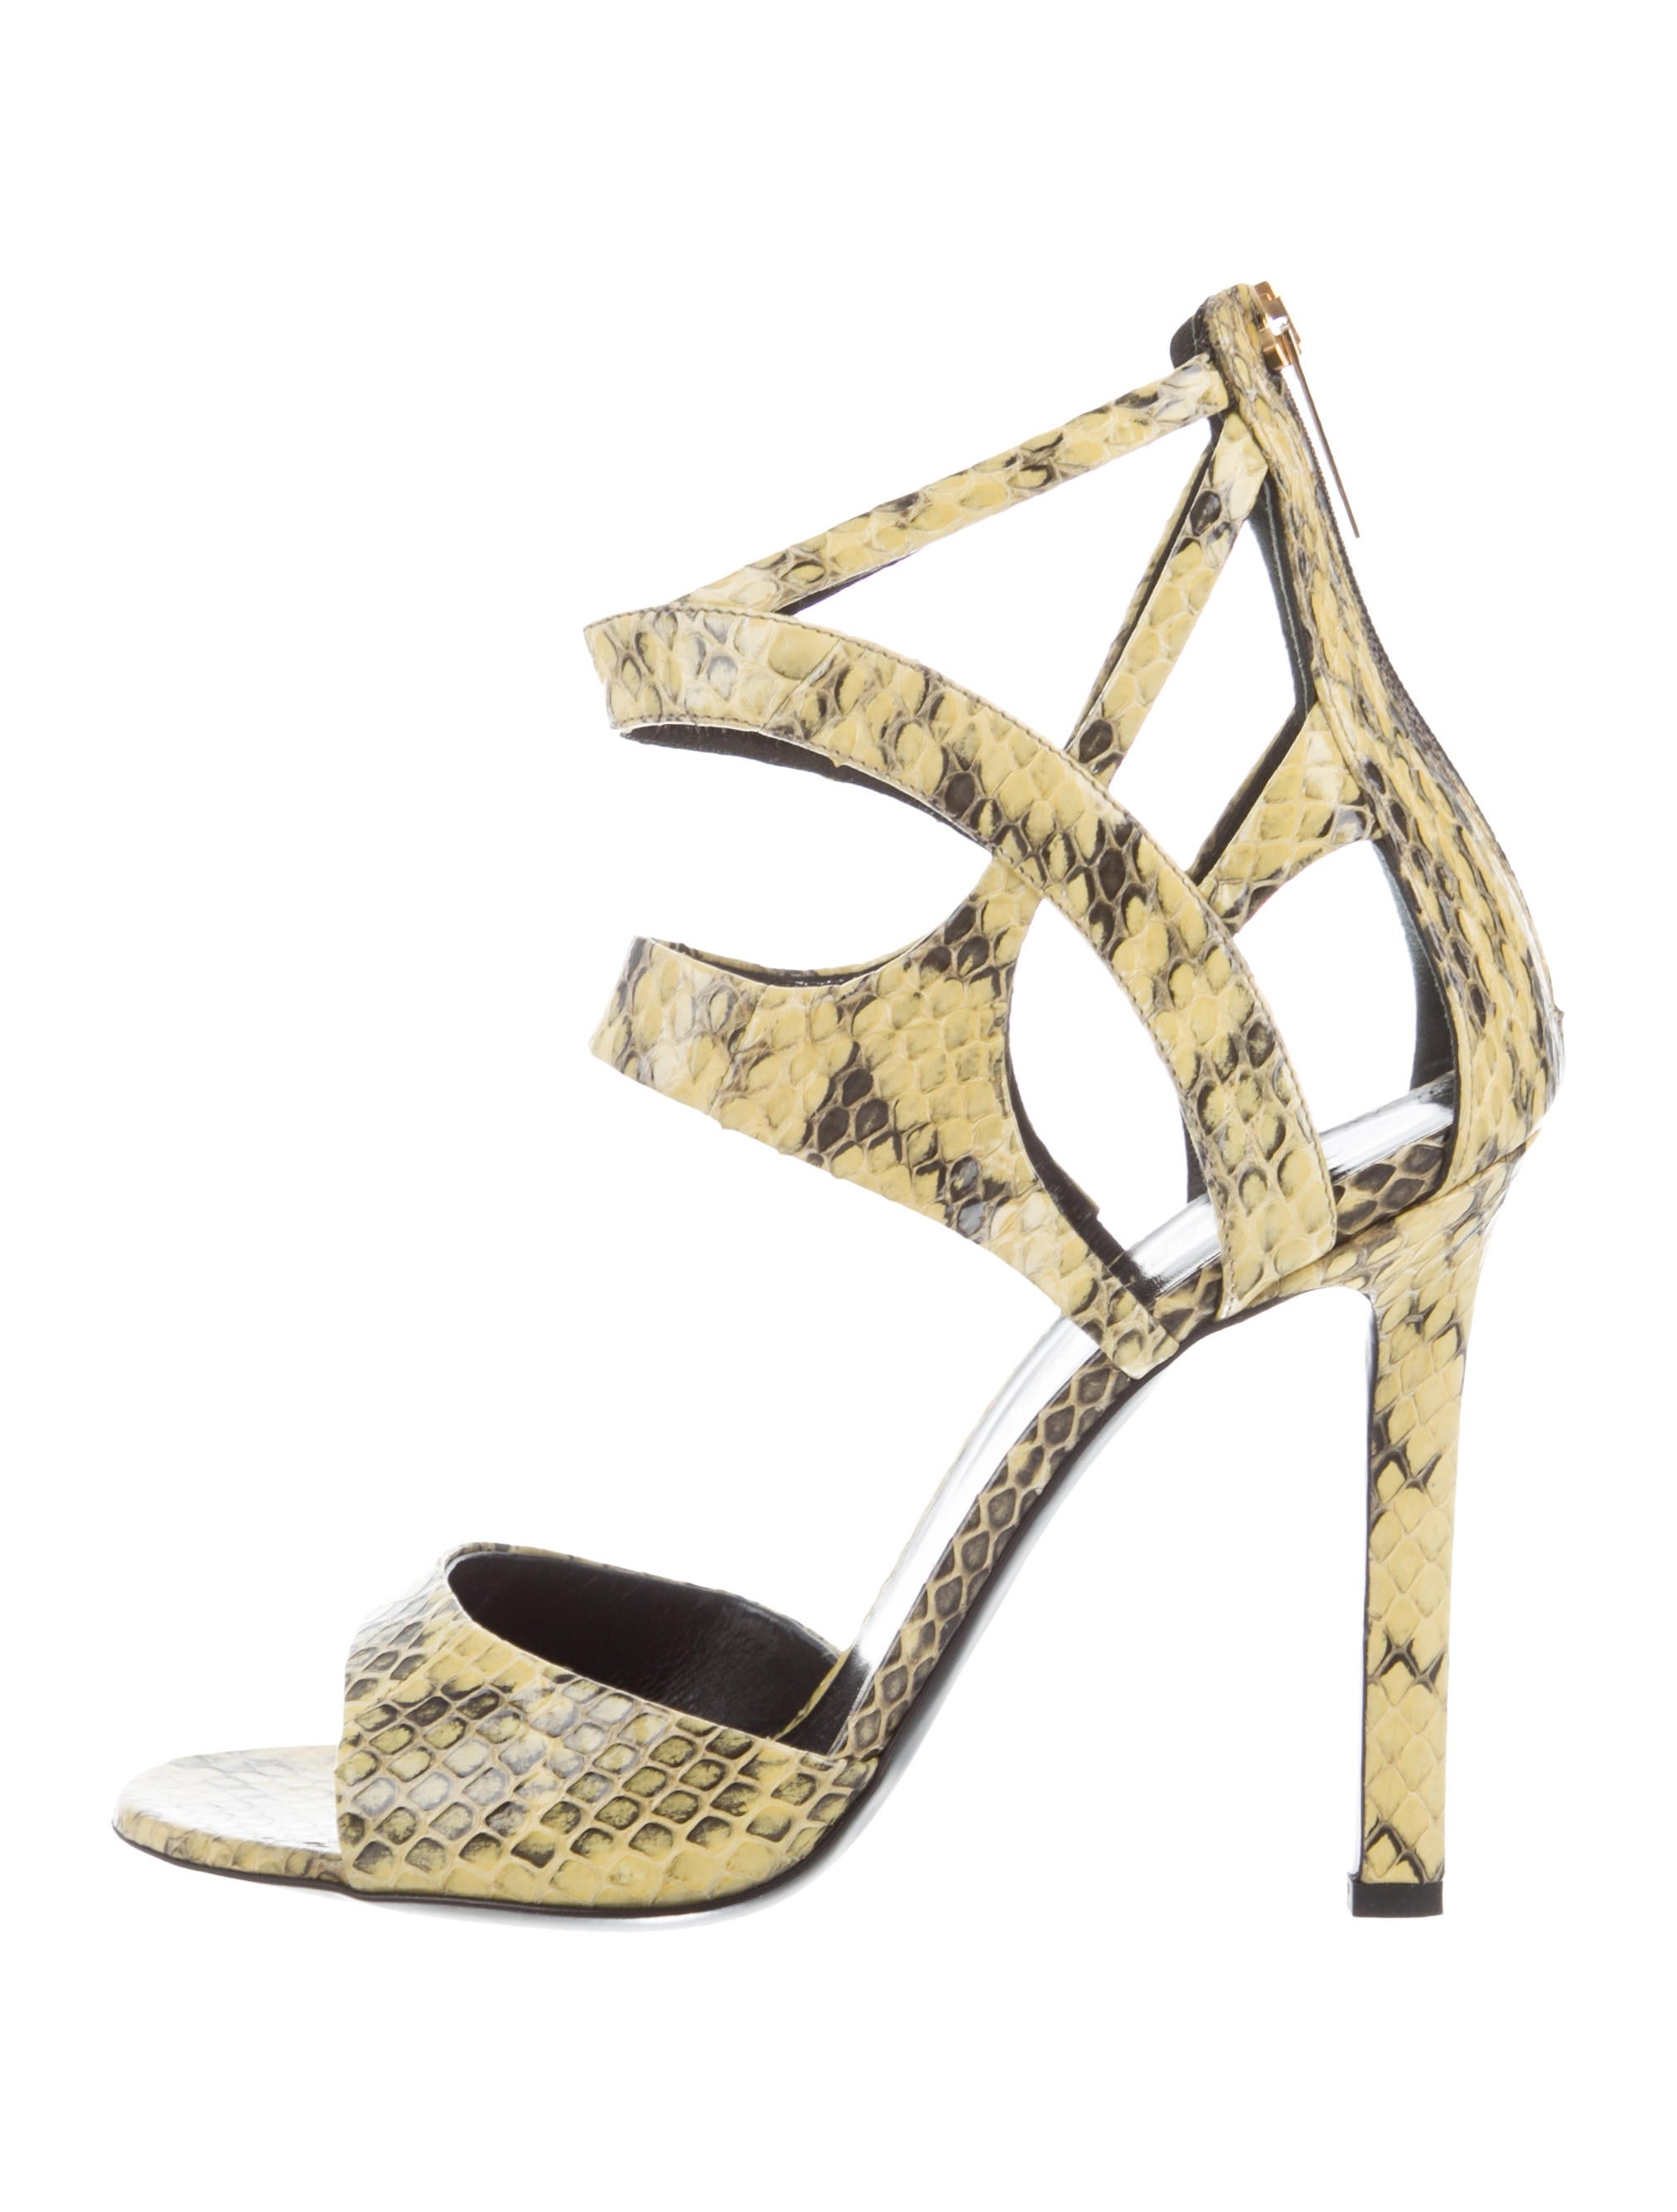 discount under $60 outlet huge surprise Tamara Mellon Snakeskin Ankle Strap Sandals w/ Tags cheap sale best seller FPHDfXN9